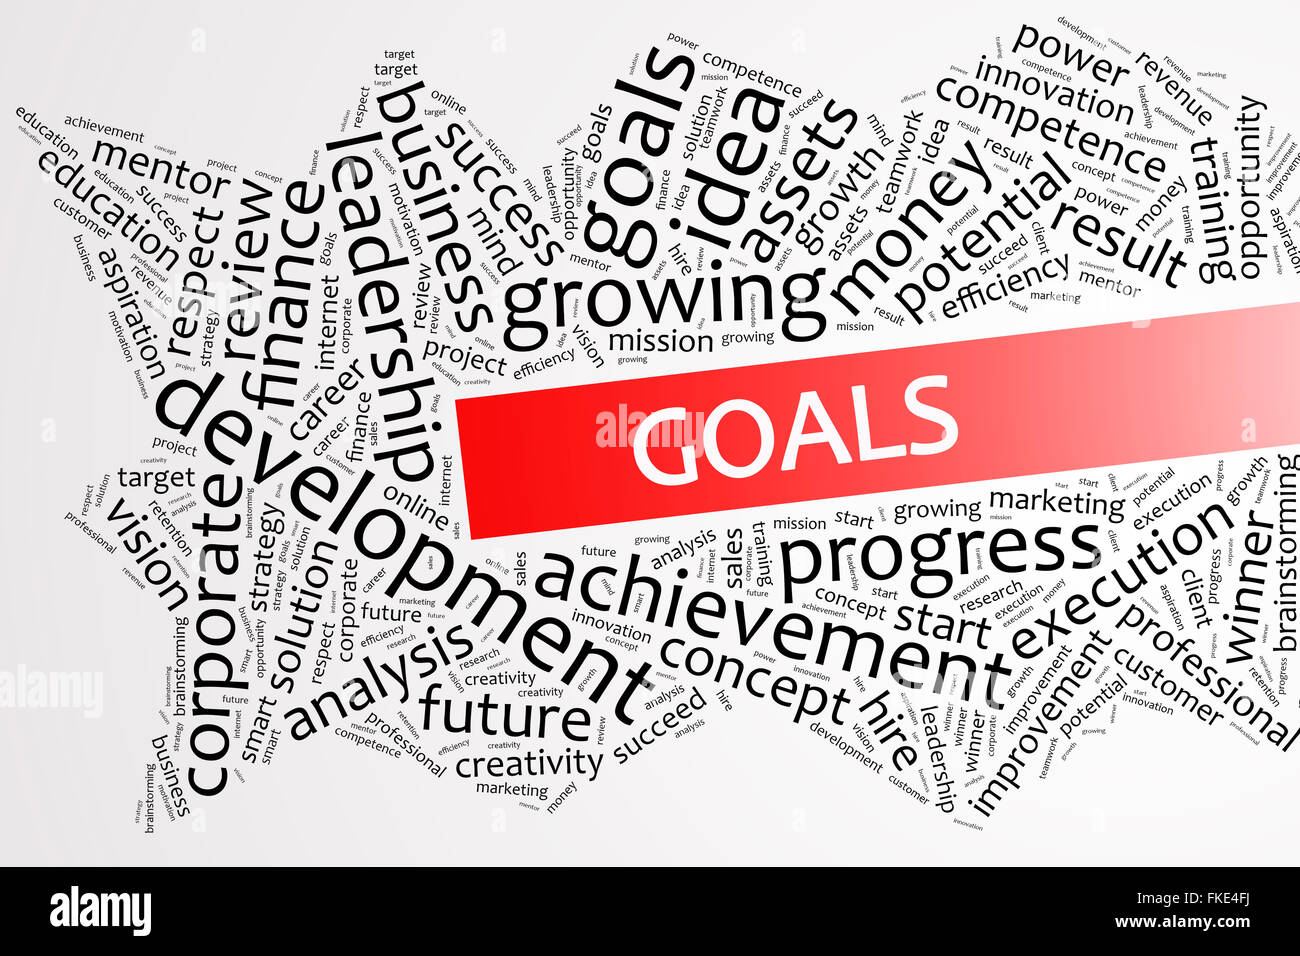 Goals word on word cloud business concept - Stock Image